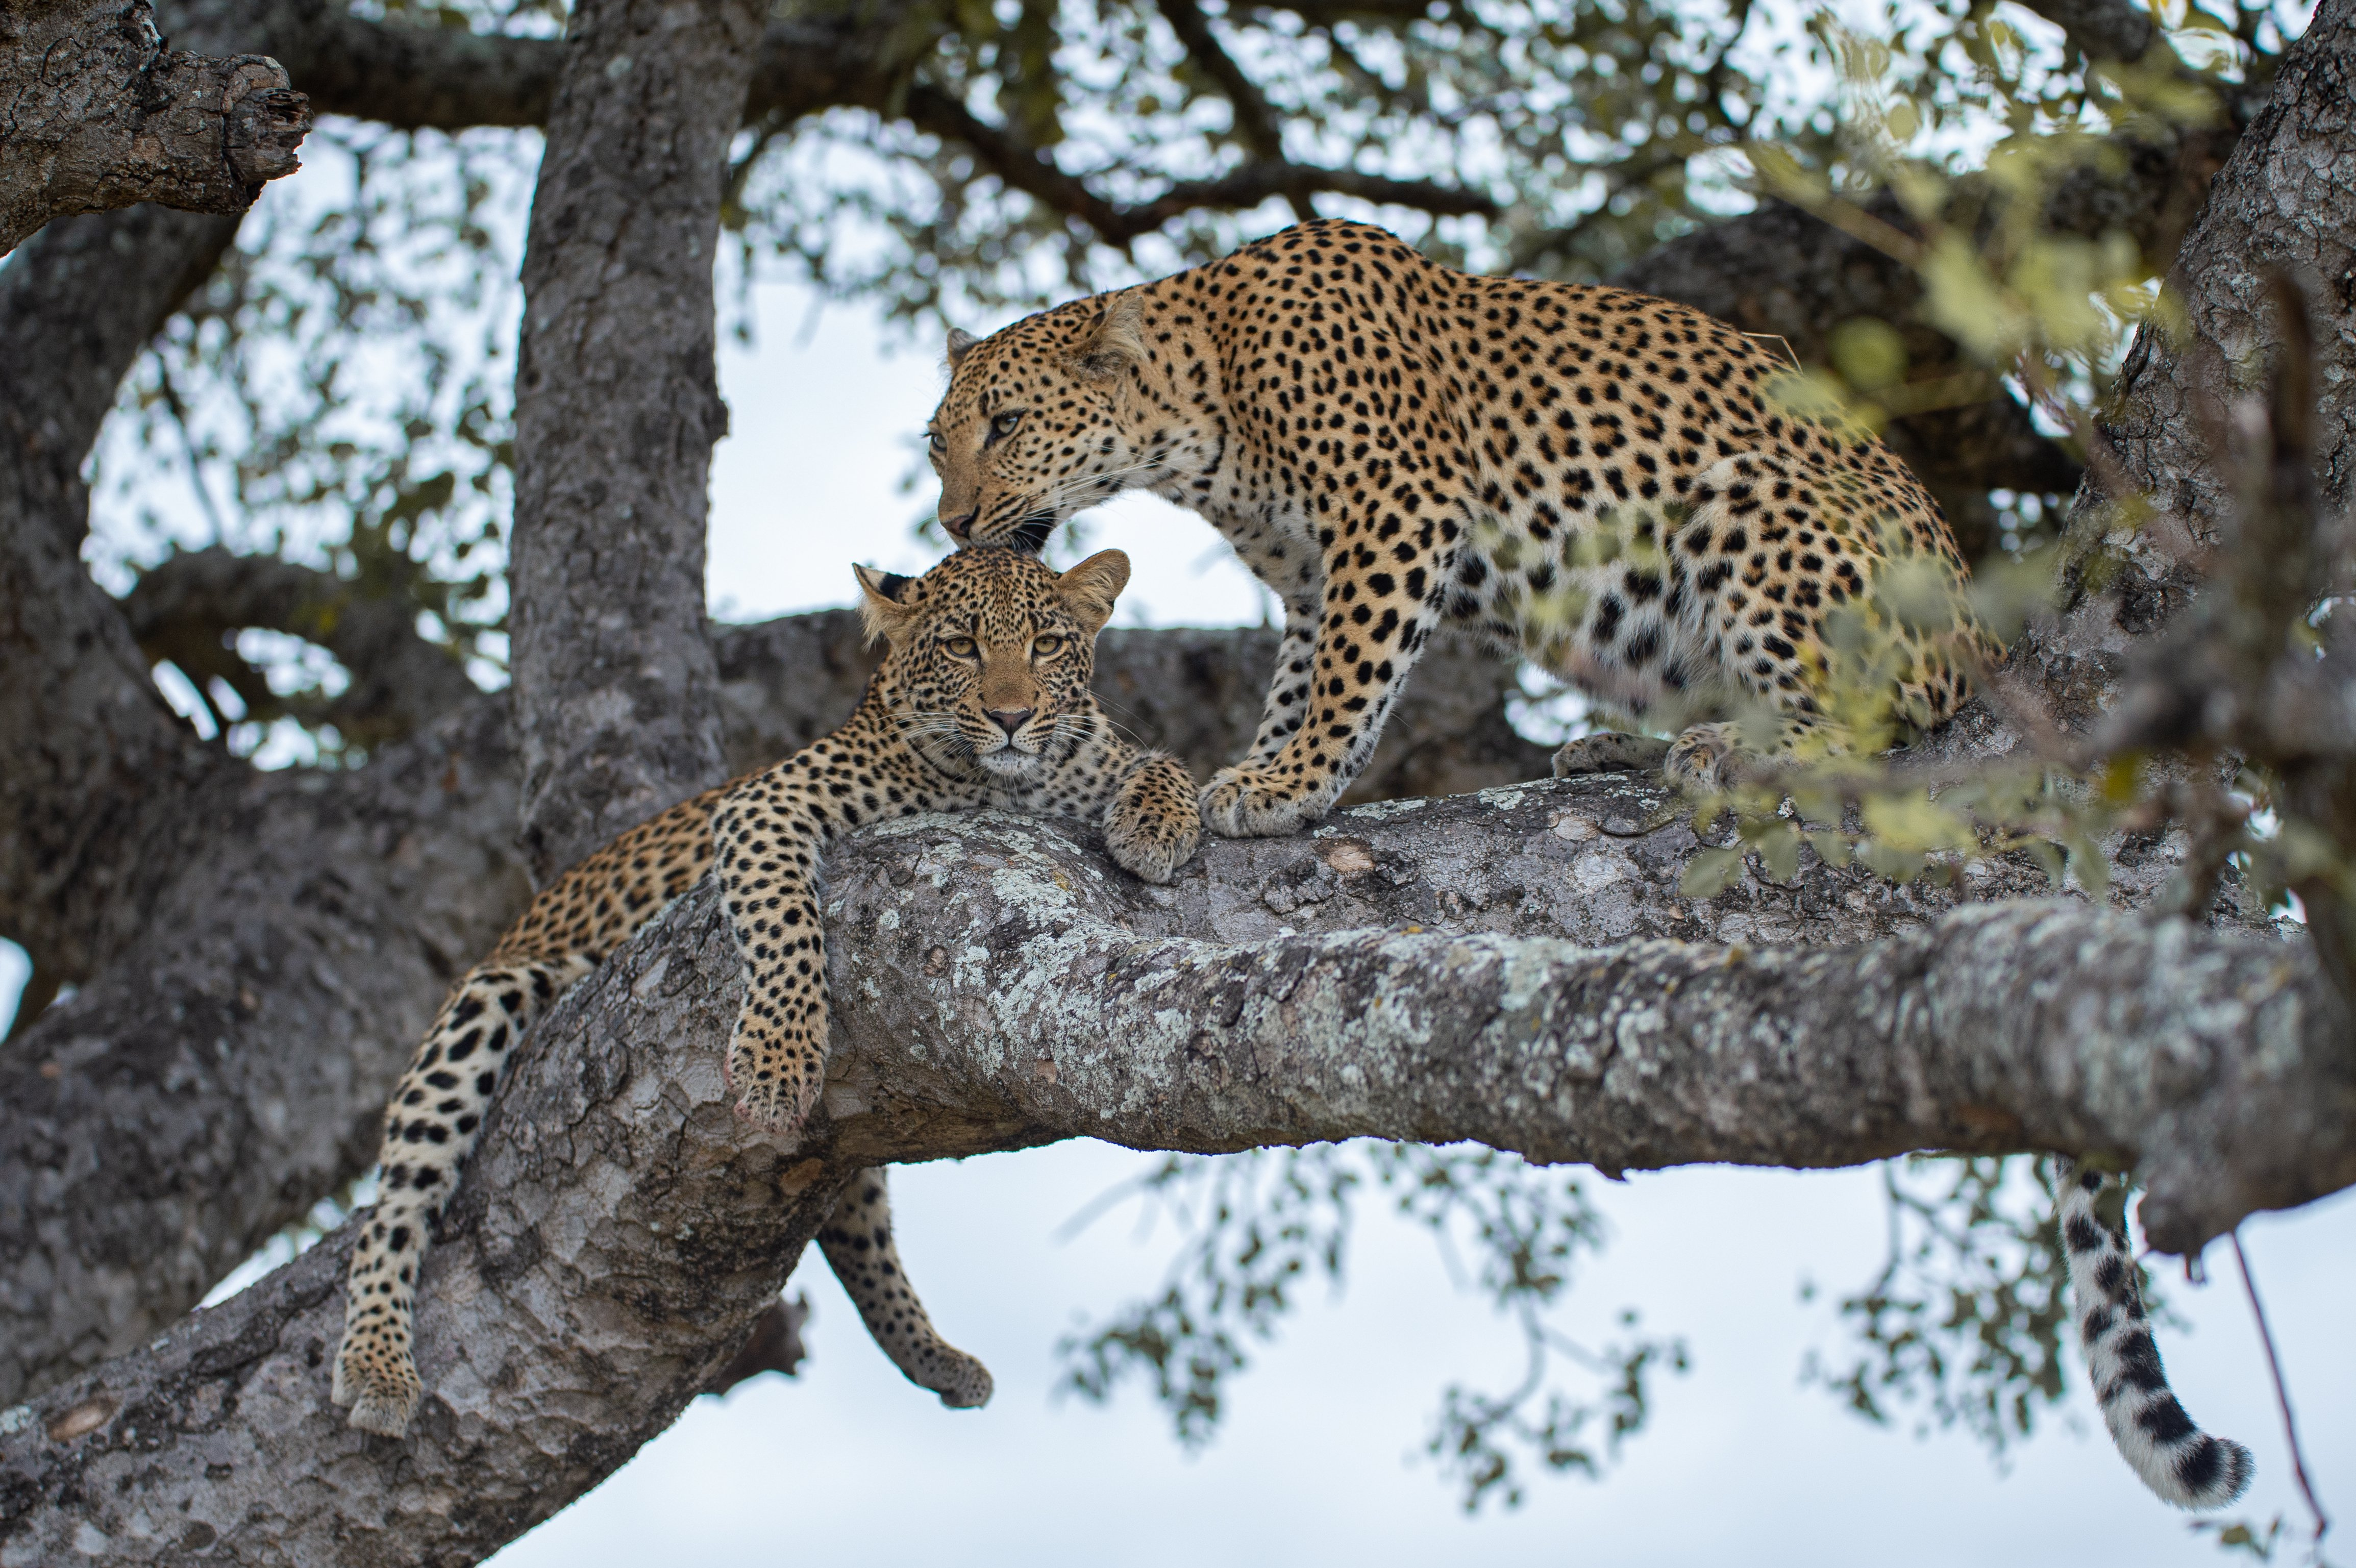 A female leopard and her cub on a tree branch | Photo: Shutterstock